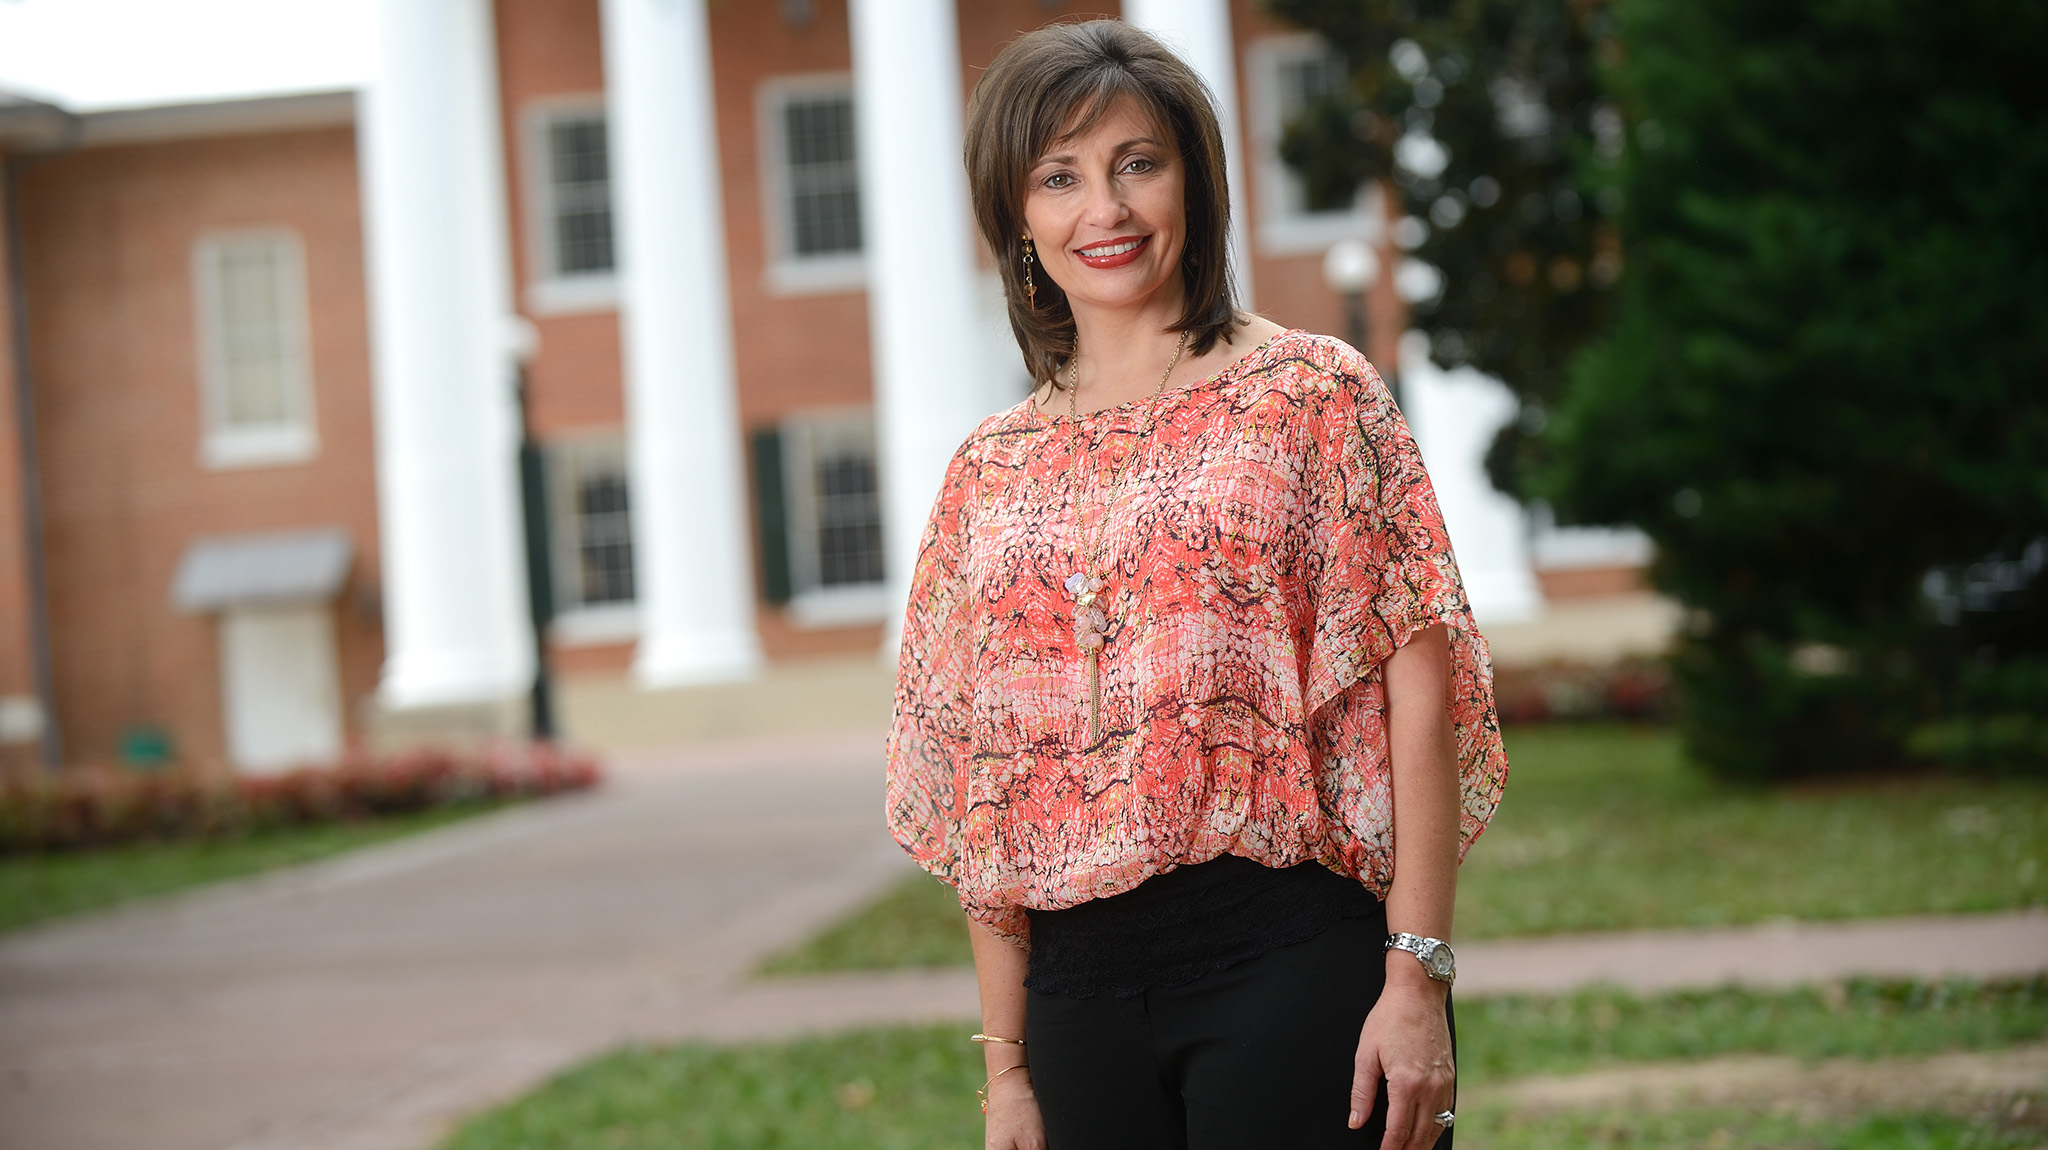 McClelland Named Chair of Teacher Education at UM